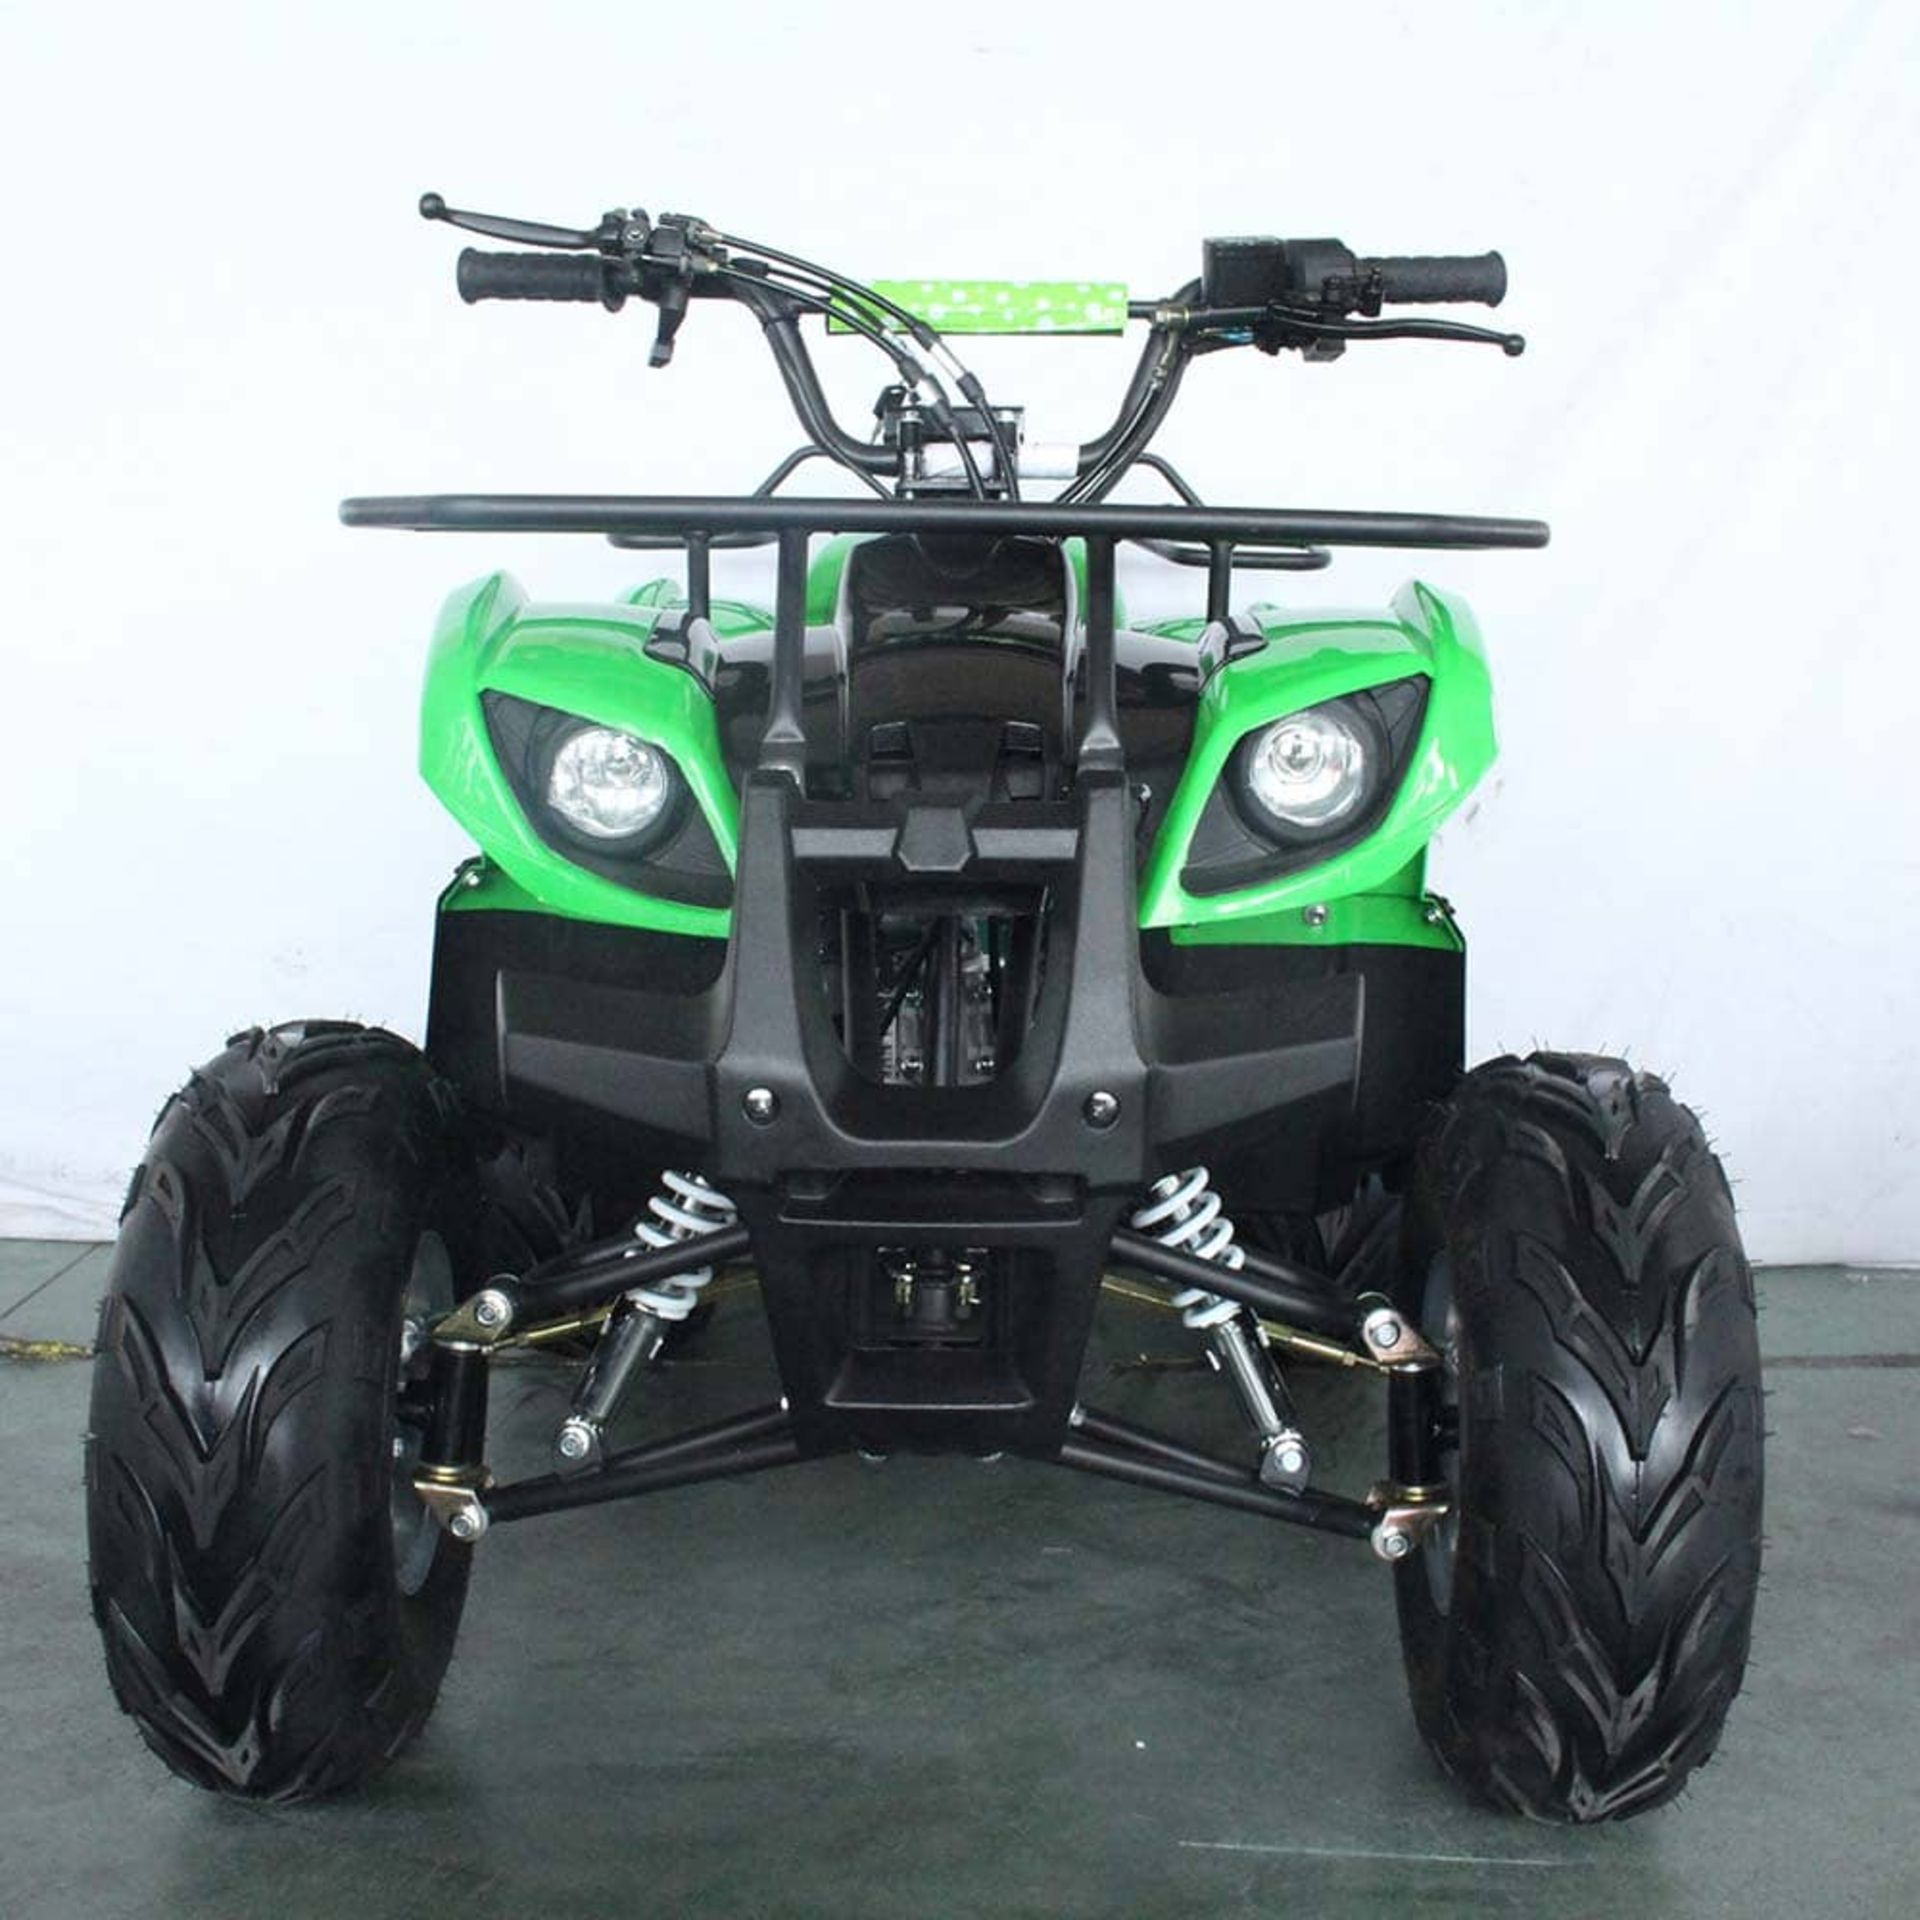 + VAT Brand New 125cc Condor Quad Bike - Four Stroke - Single Cylinder - Front Drum Brakes & Rear - Image 8 of 9